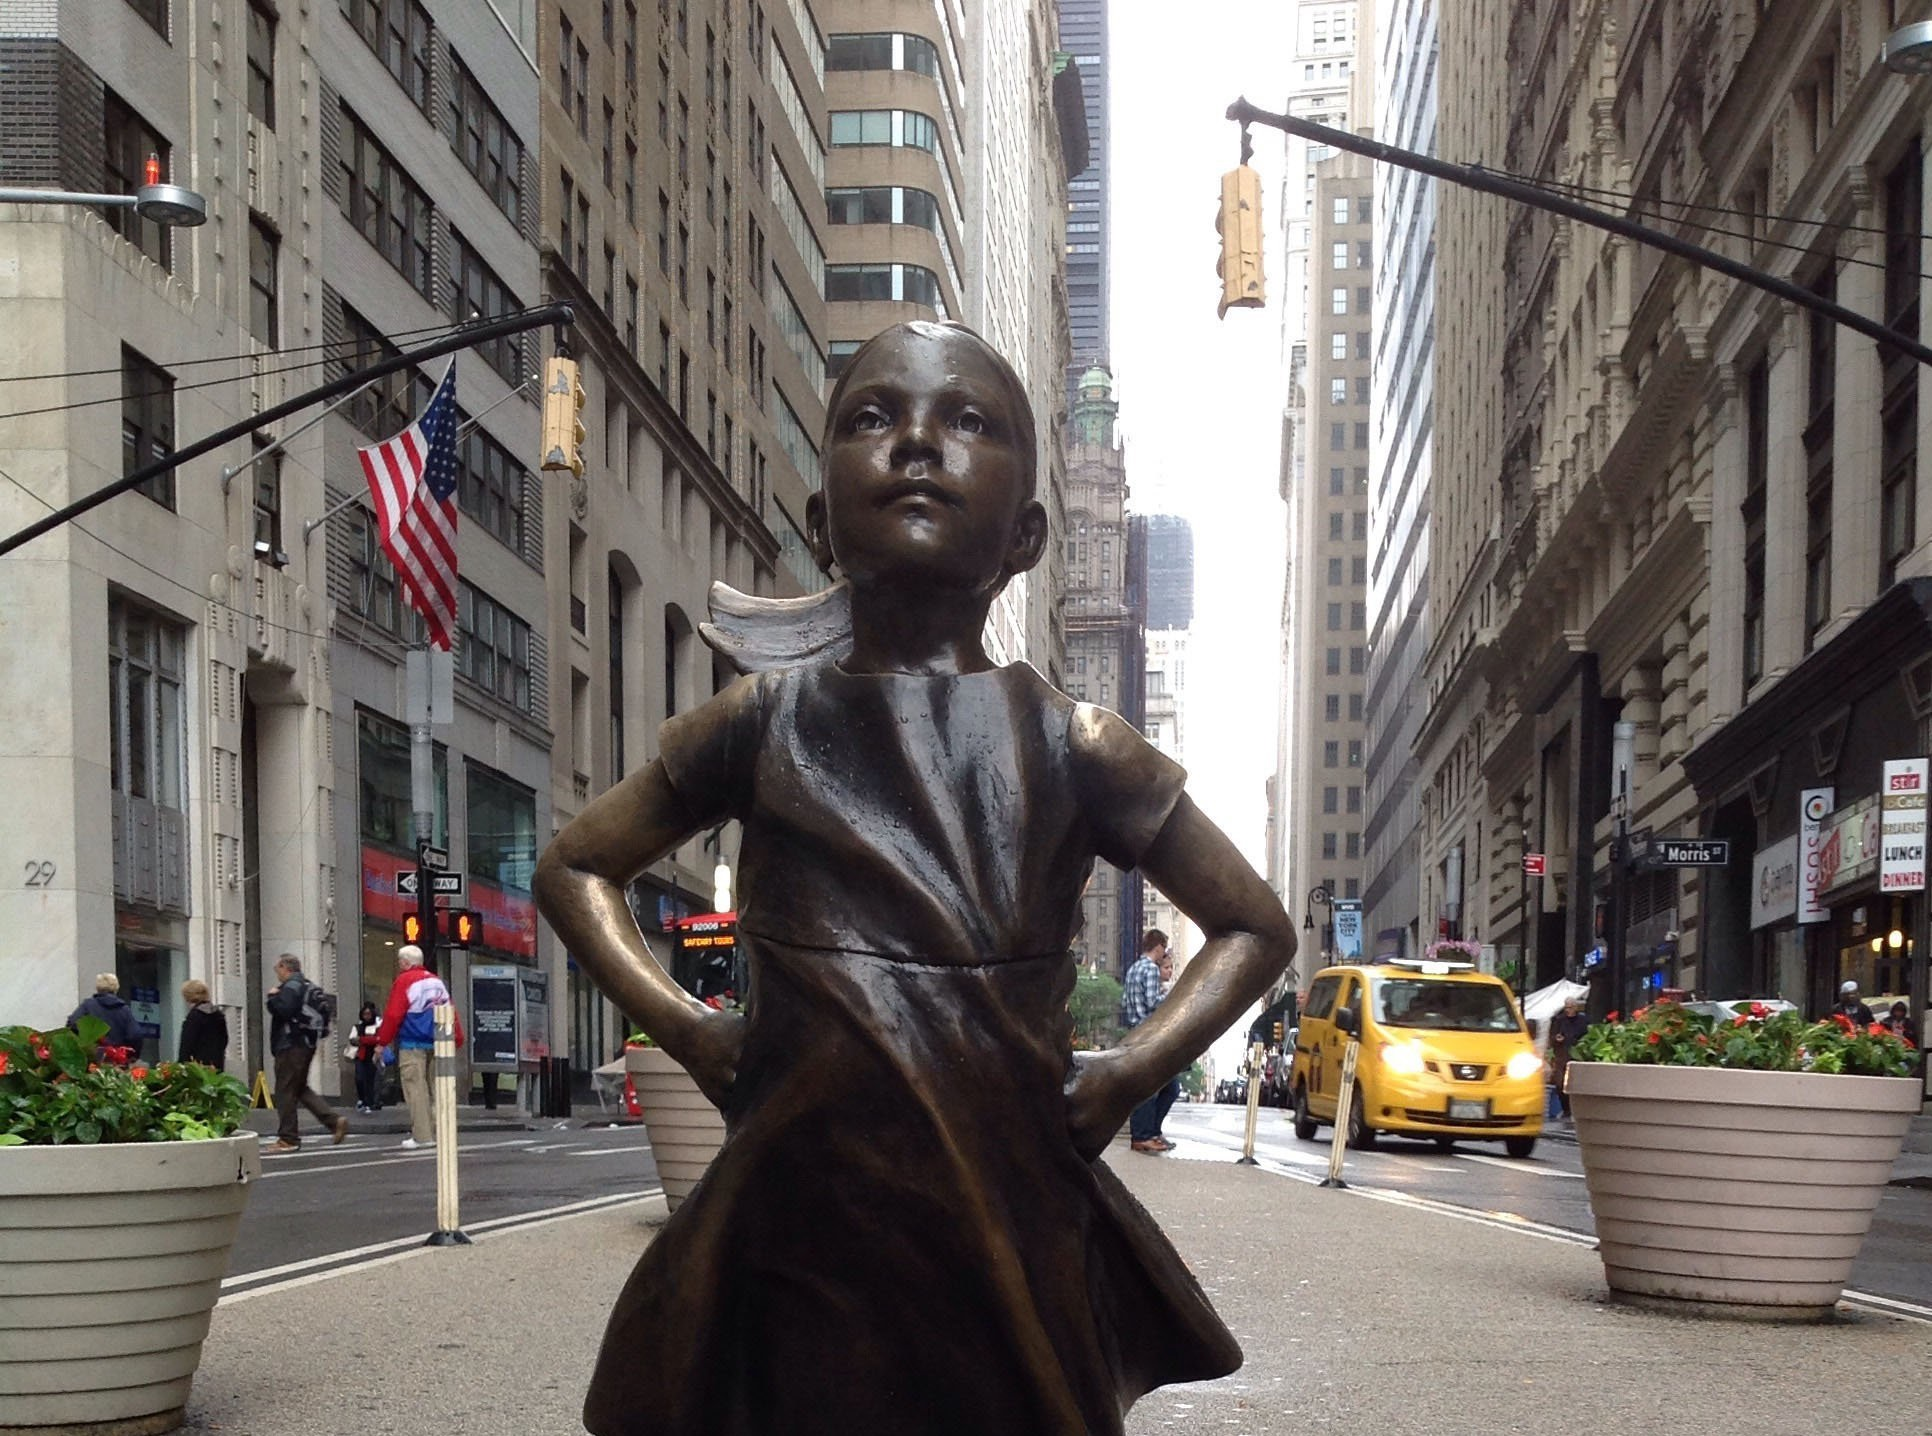 NYC's 'Fearless Girl' Statue Will Stay Up For Another Year